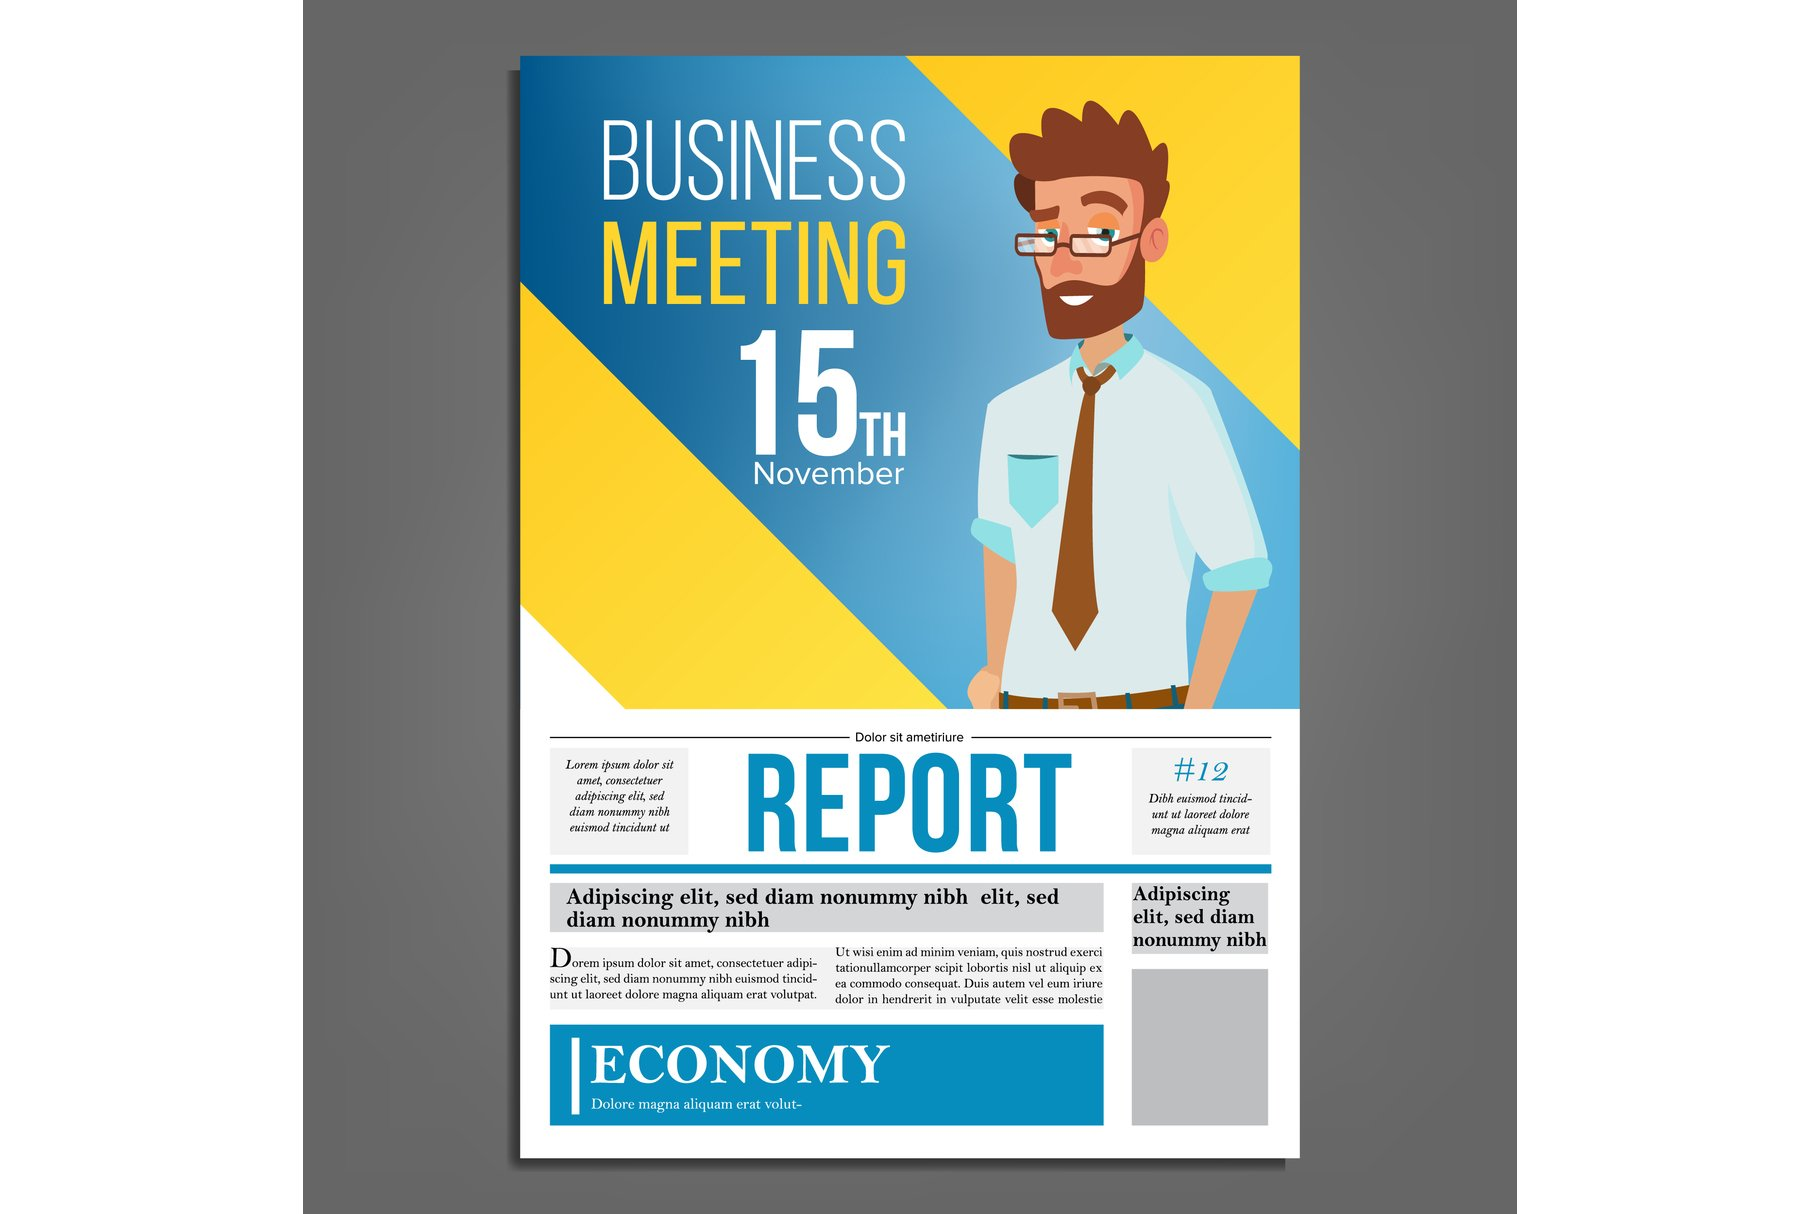 Business Meeting Poster Vector. Businessman. Layout example image 1